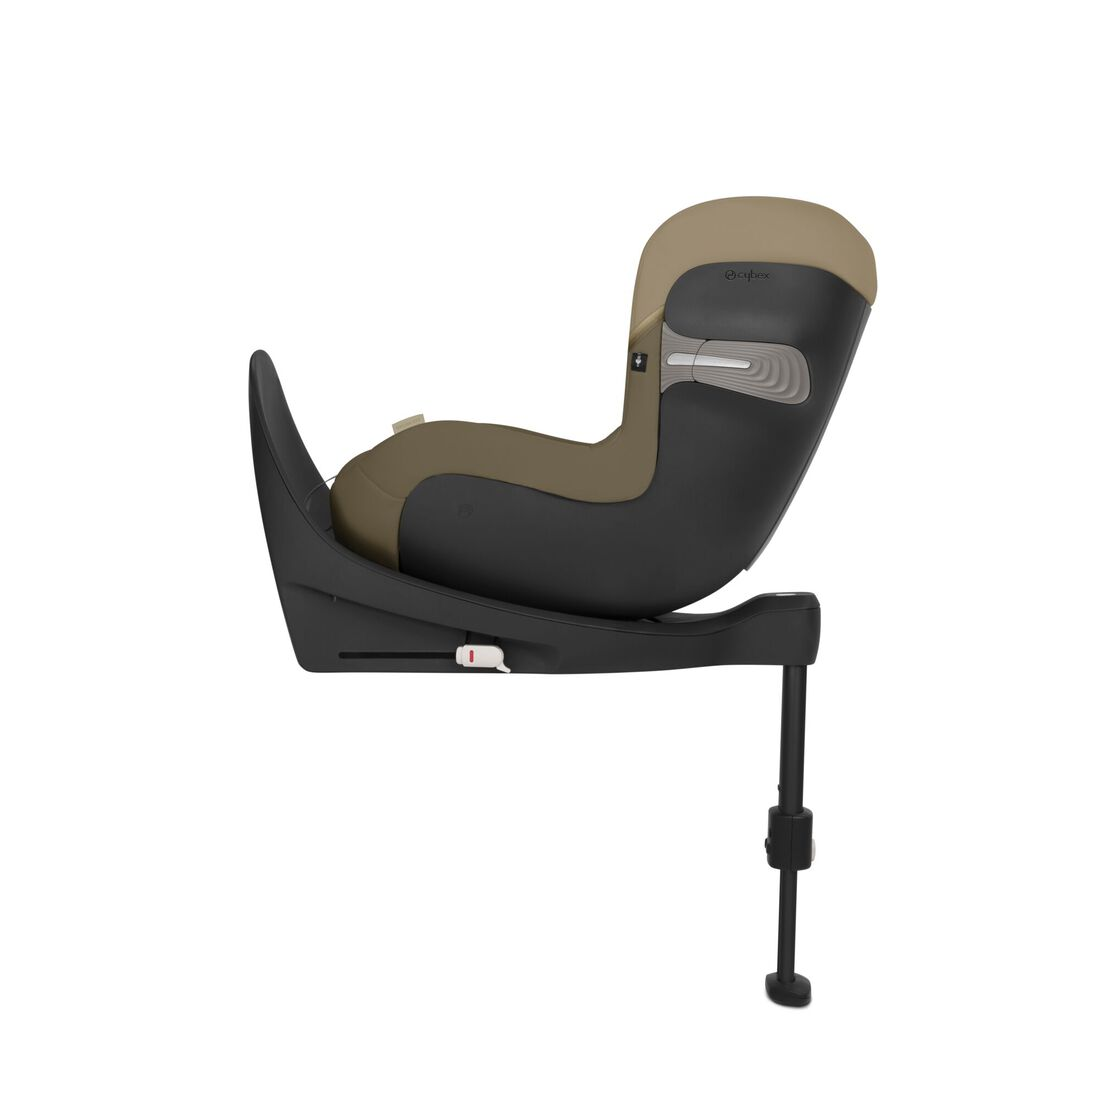 CYBEX Sirona SX2 i-Size - Classic Beige in Classic Beige large image number 2